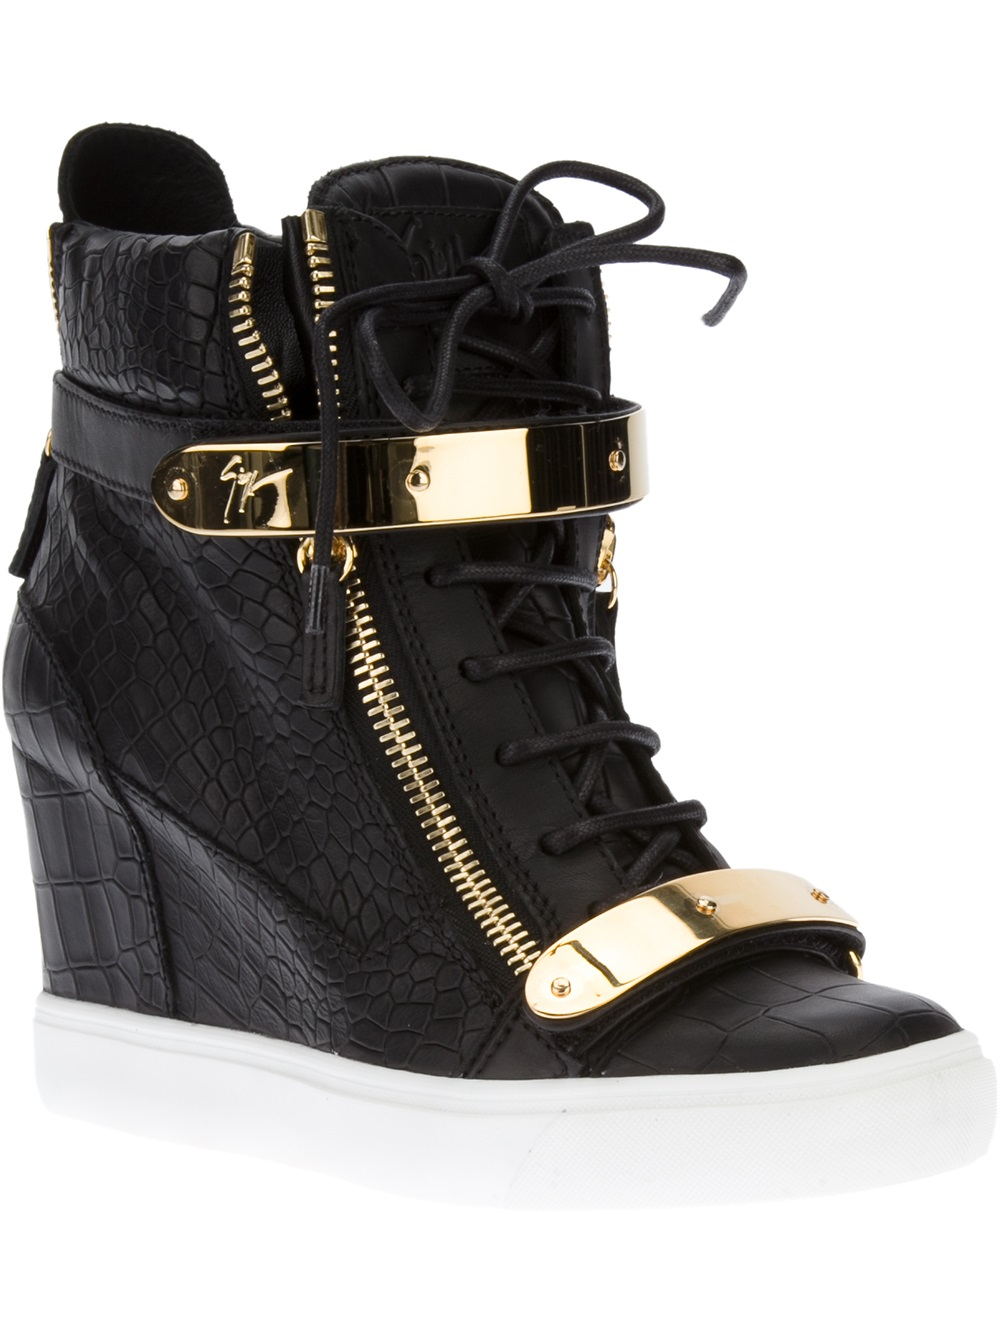 Find black high-top wedges at ShopStyle. Shop the latest collection of black high-top wedges from the most popular stores - all in one place.